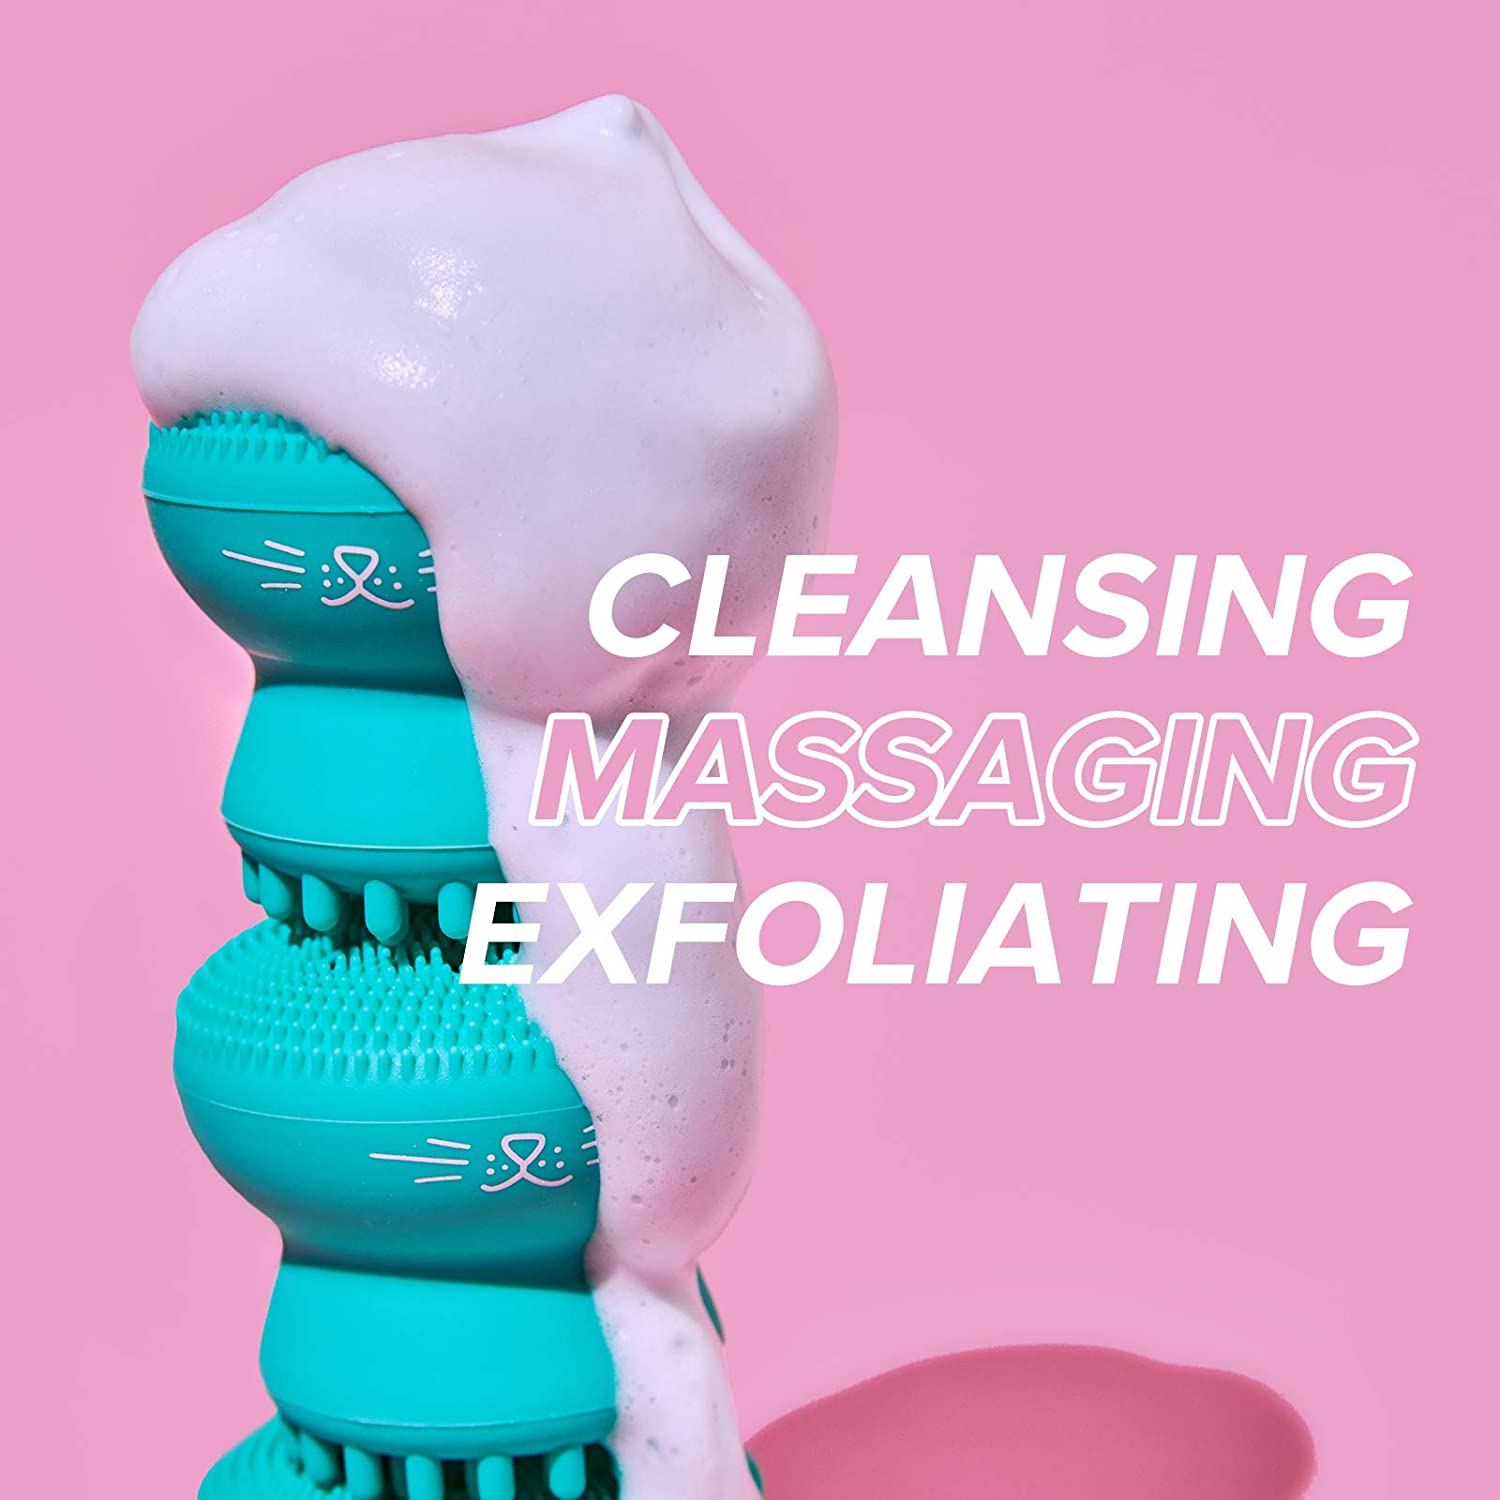 EFERO Cute Face Cleansing Brush Soft Silicone Face Skin Care Cleaning Tools for Women Exfoliating Scrub Face Massage Brushes